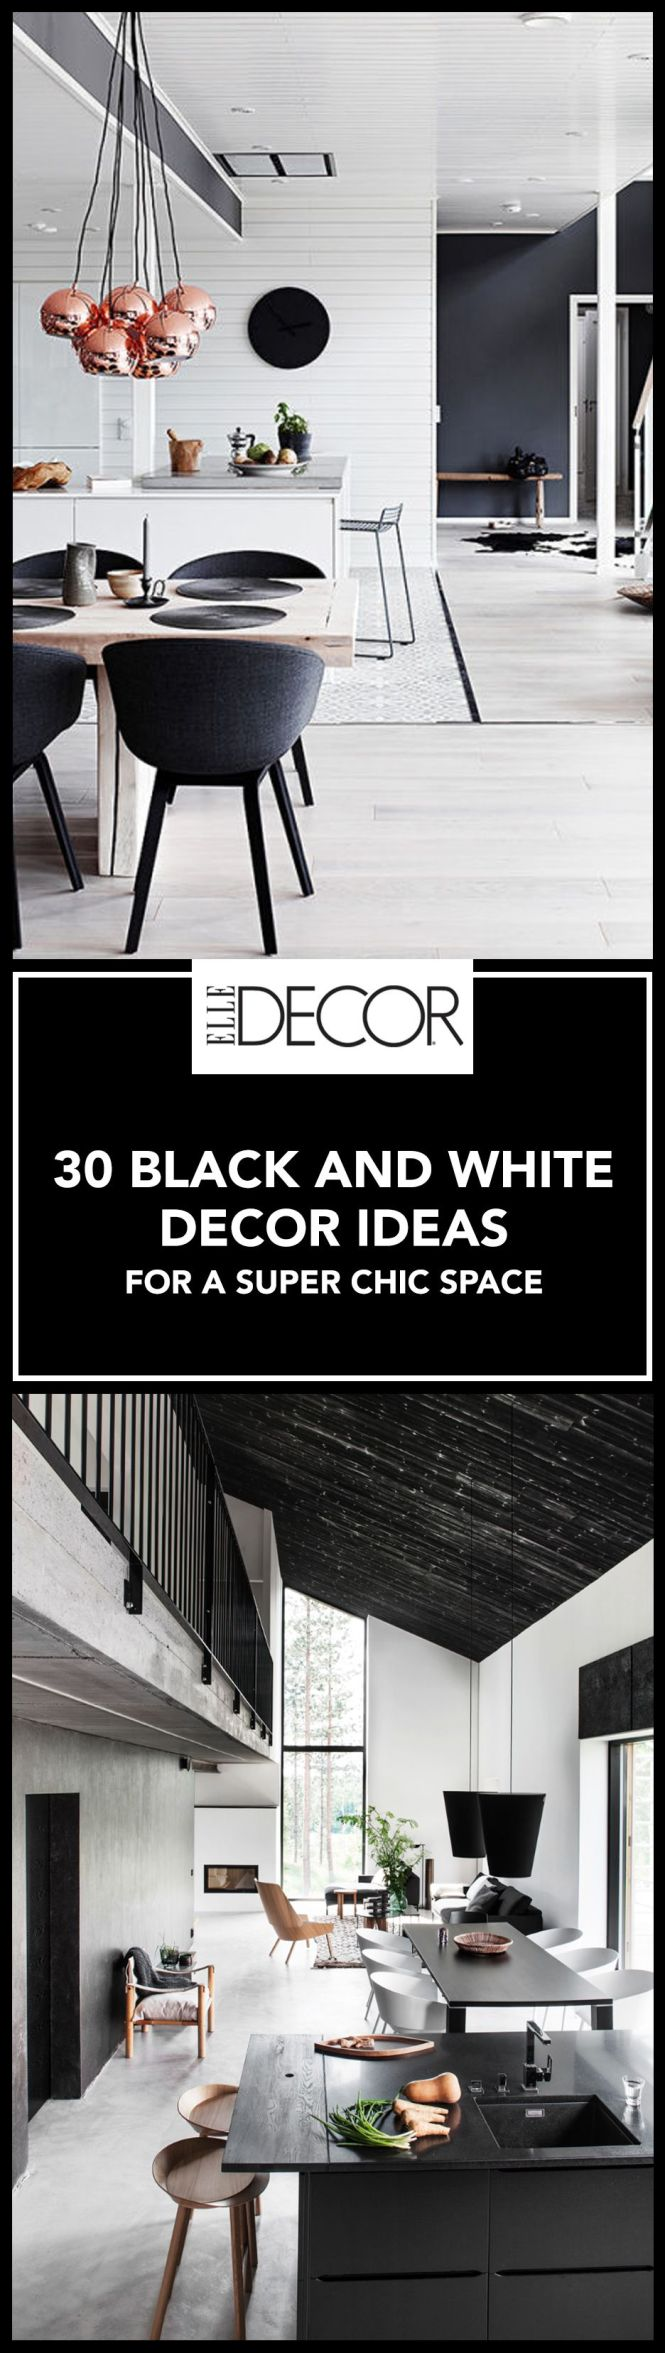 Bedroom Black And White Decorating With Photo Of Luxury